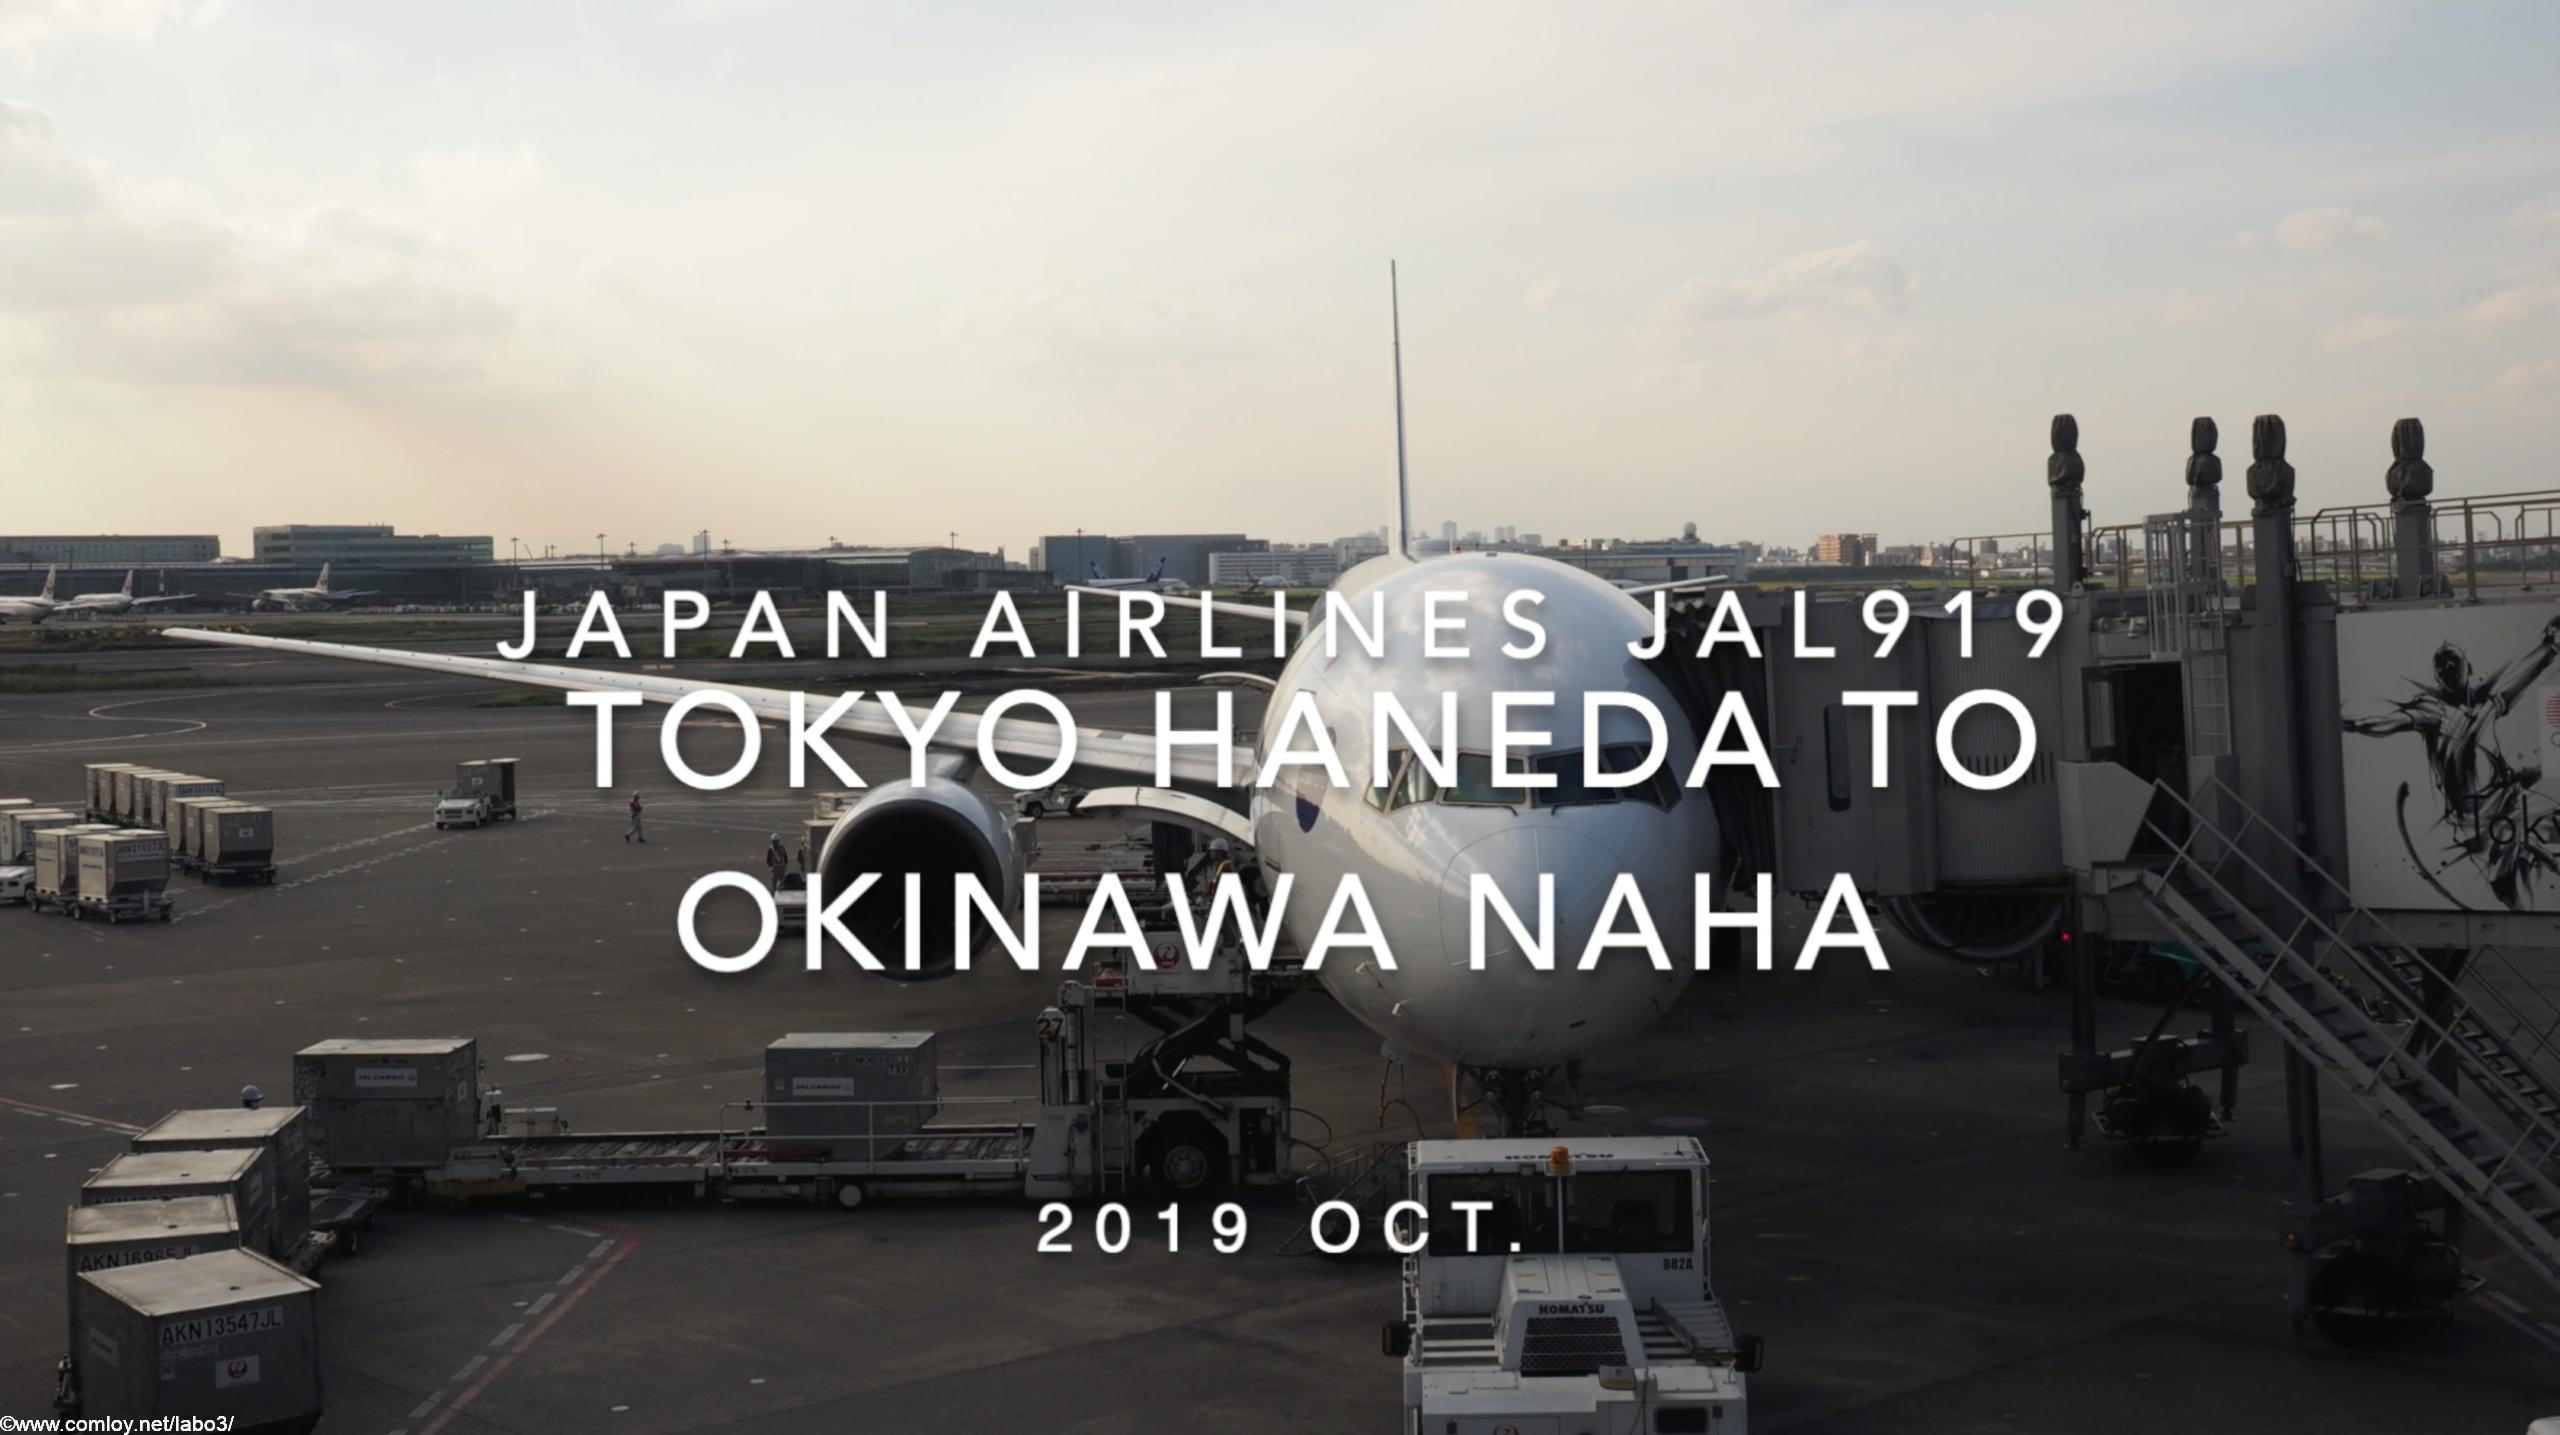 【Flight Report】2019 Oct Japan airlines JAL919 TOKYO HANEDA TO OKINAWA NAHA 日本航空 羽田 - 那覇 搭乗記